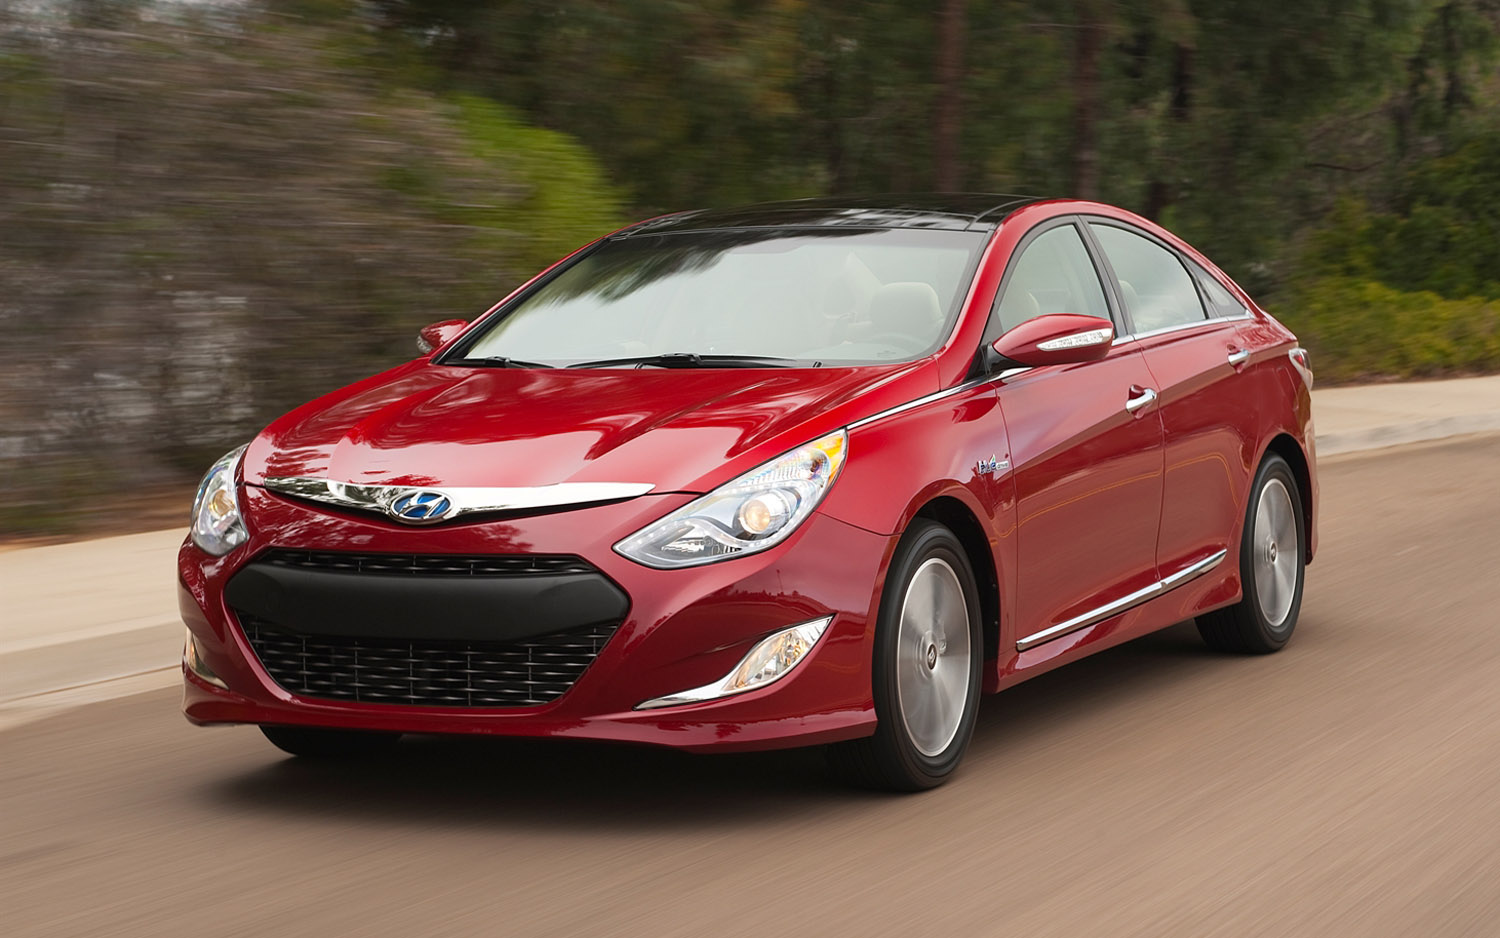 2013 hyundai sonata hybrid information and photos momentcar. Black Bedroom Furniture Sets. Home Design Ideas